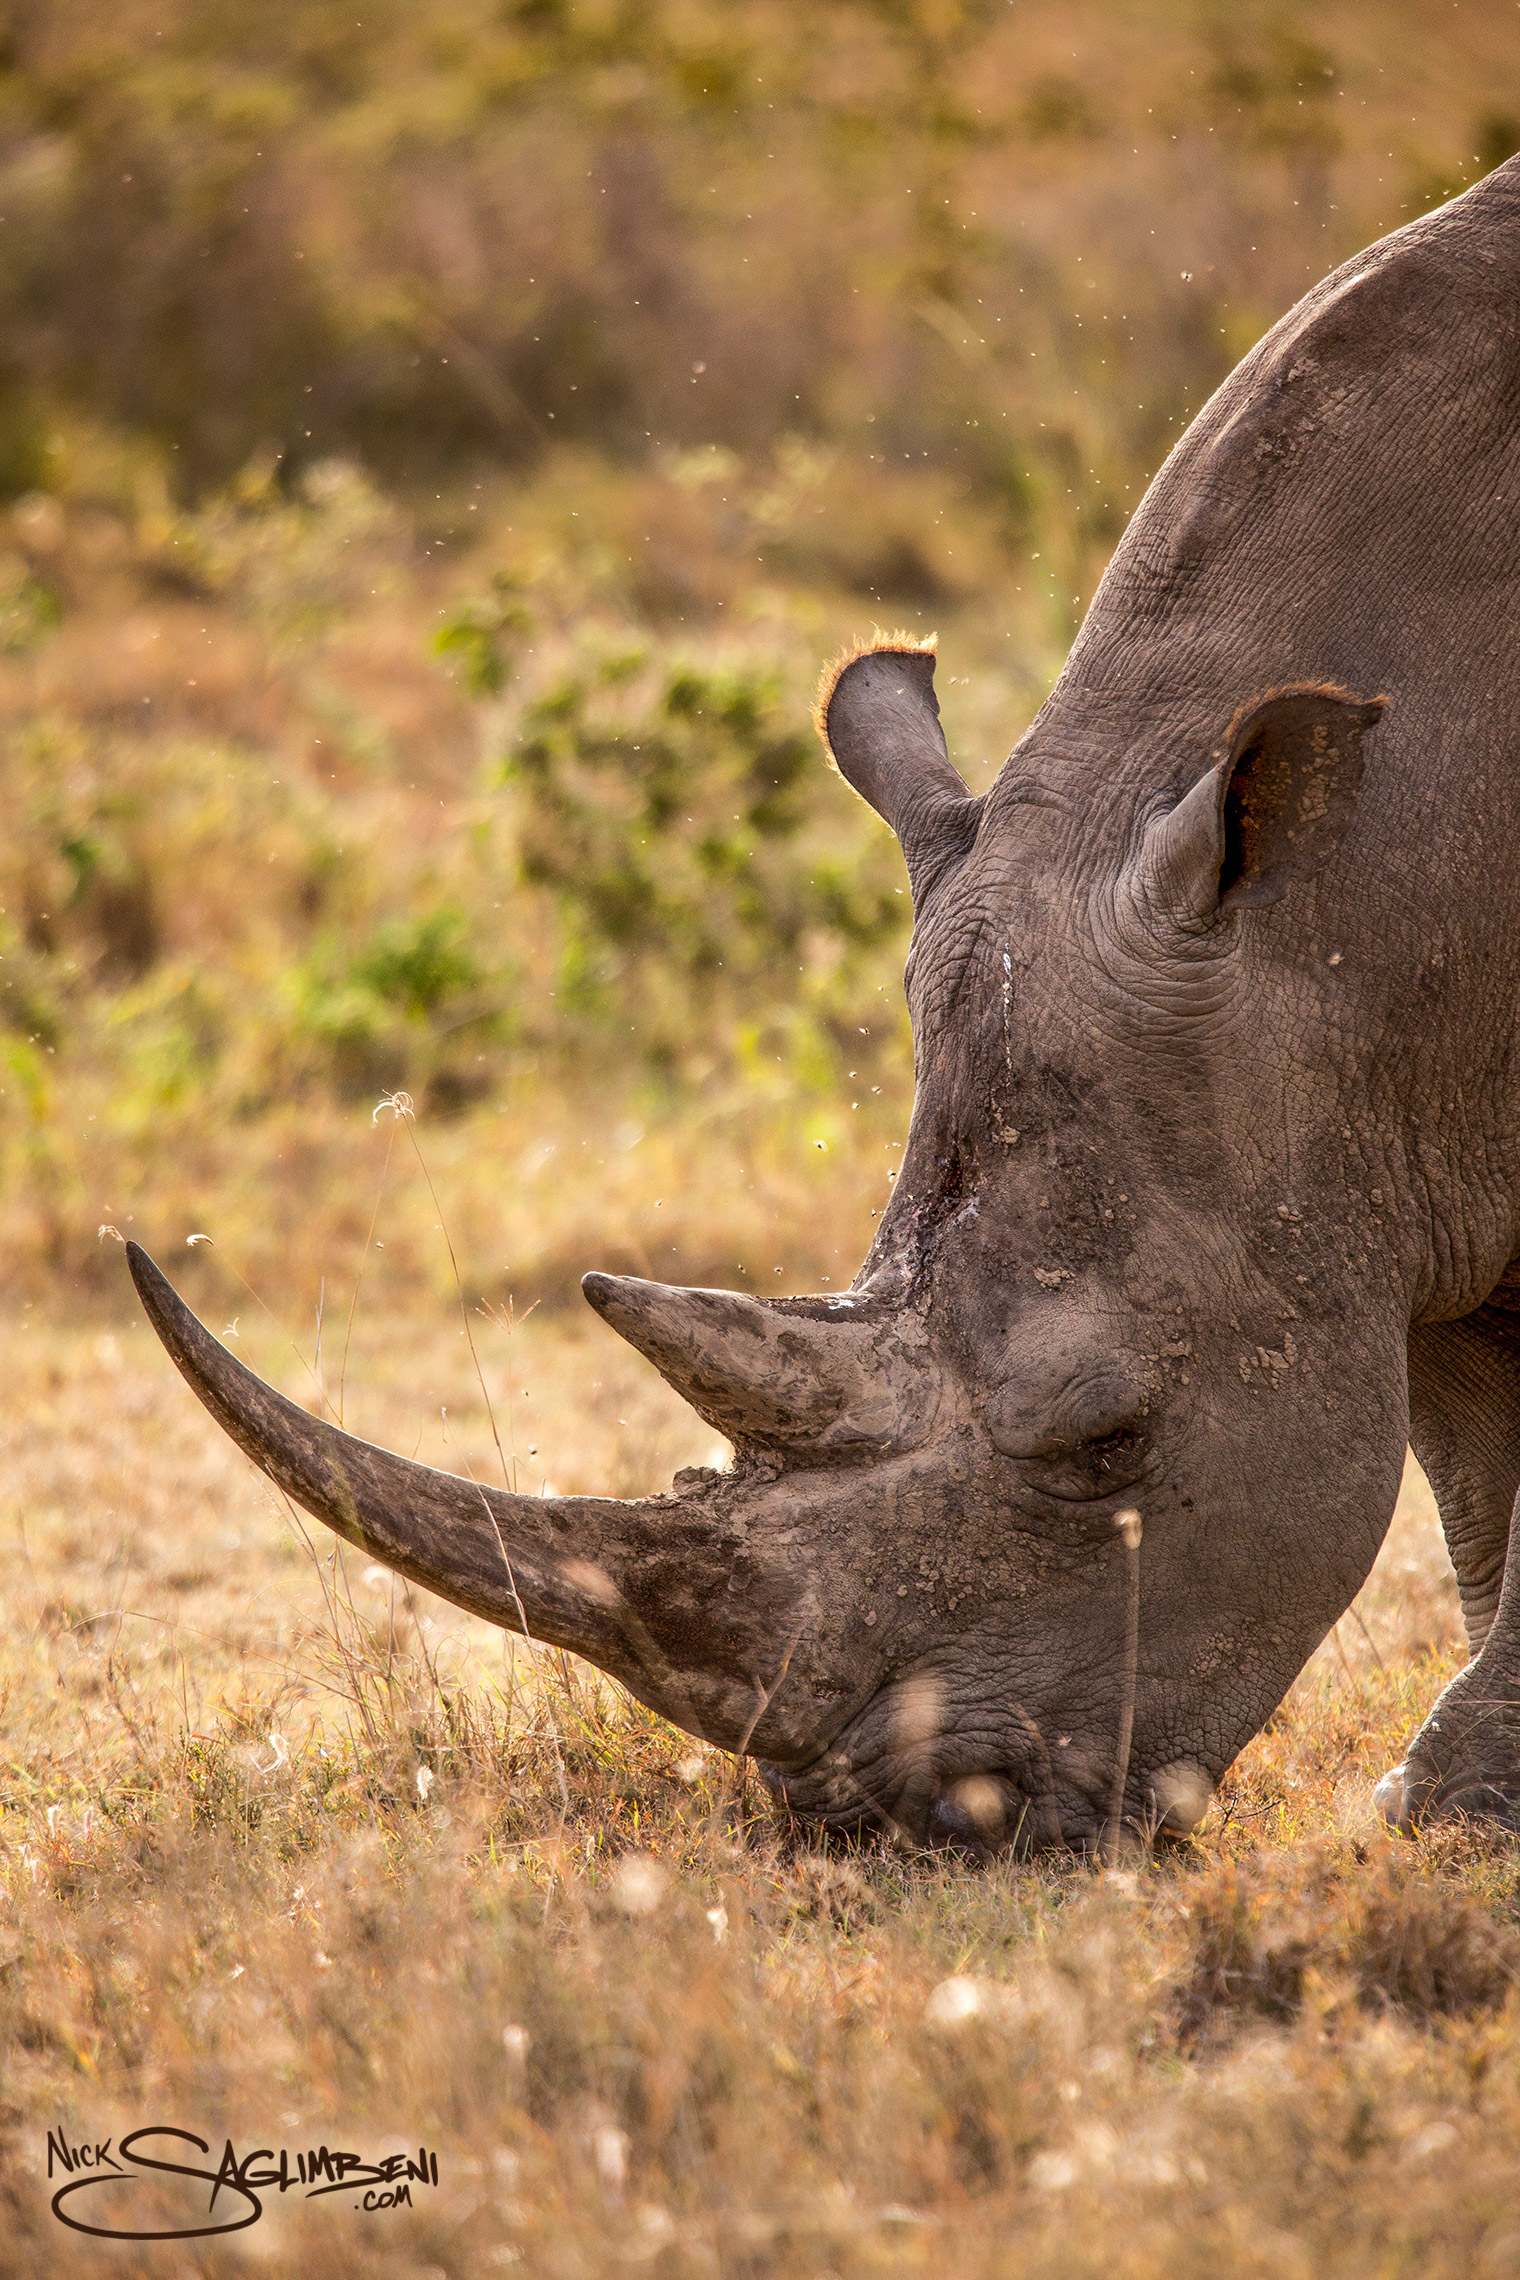 Slickforce-Kenya-black-white-rhino-eating-grass-lake-nakuru-horns-nick-saglimbeni-7559